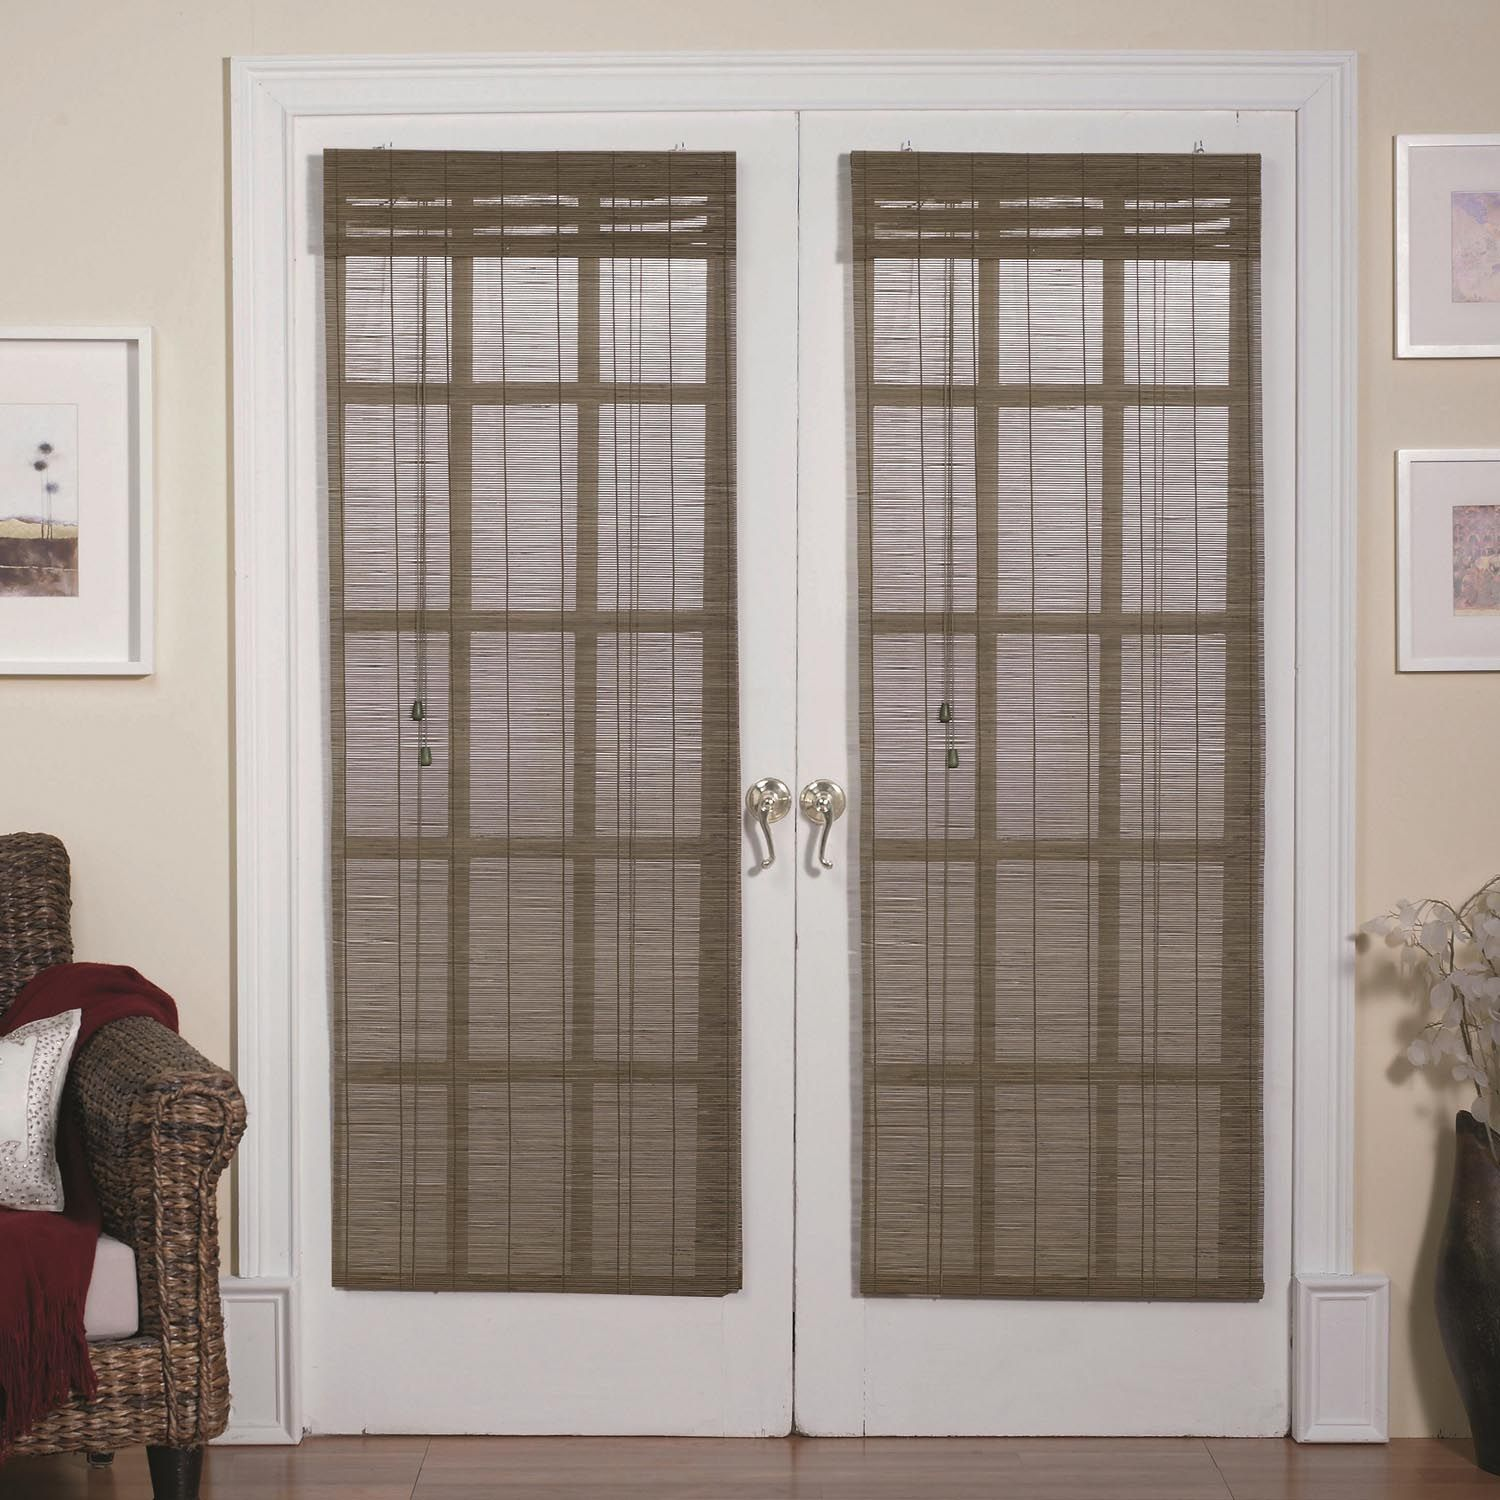 French Door Shades New Touch To Your Interior : Magnetic Roman Shades For French  Doors. Magnetic Roman Shades For French Doors.